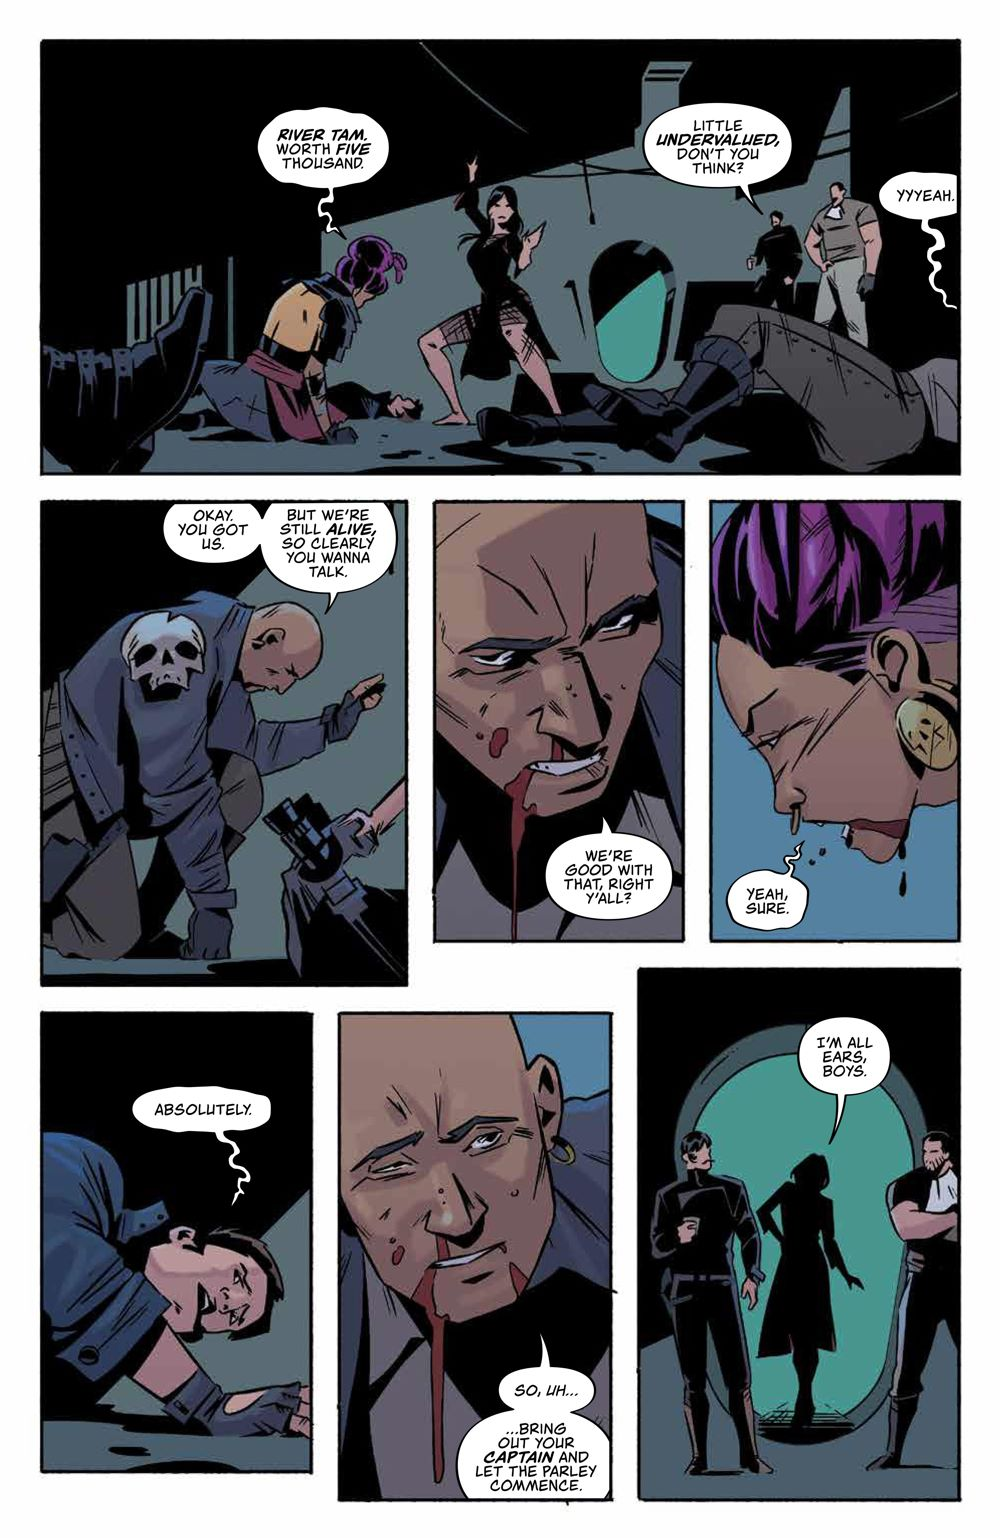 Firefly_ReturnToEarth_v1_HC_PRESS_16 ComicList Previews: FIREFLY RETURN TO THE EARTH THAT WAS VOLUME 1 HC